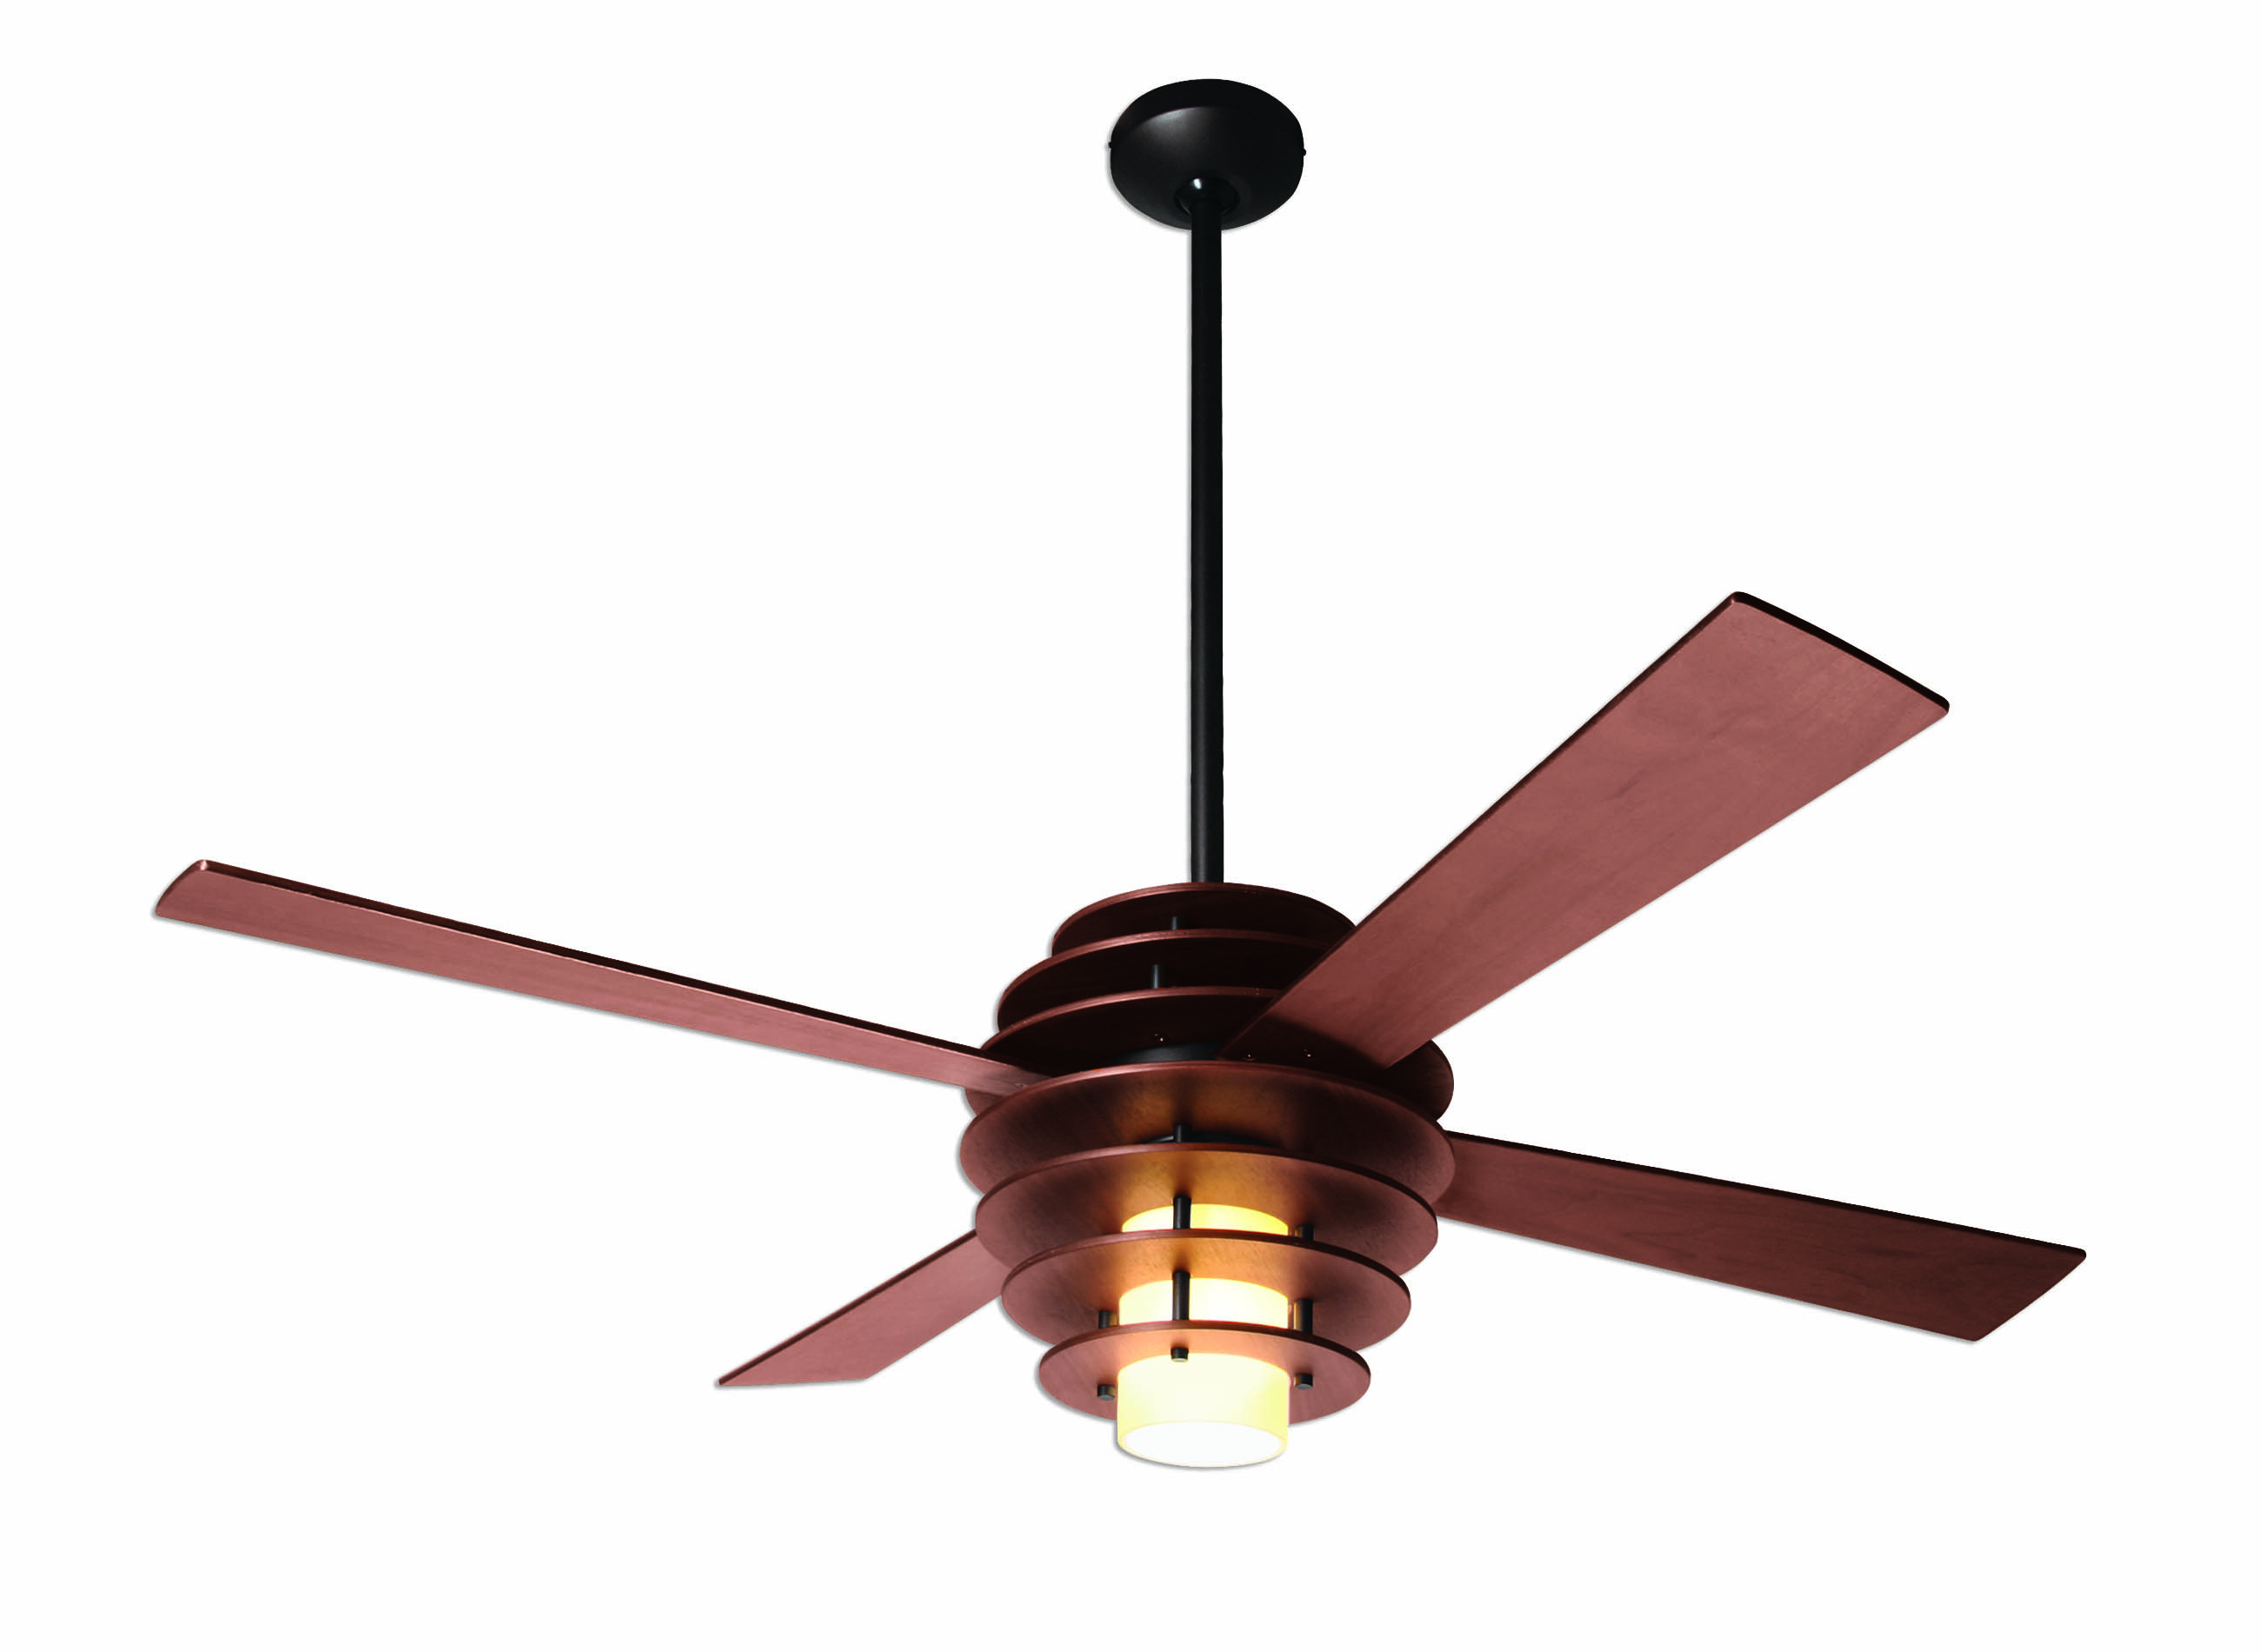 Wooden beehive inspired ceiling fan